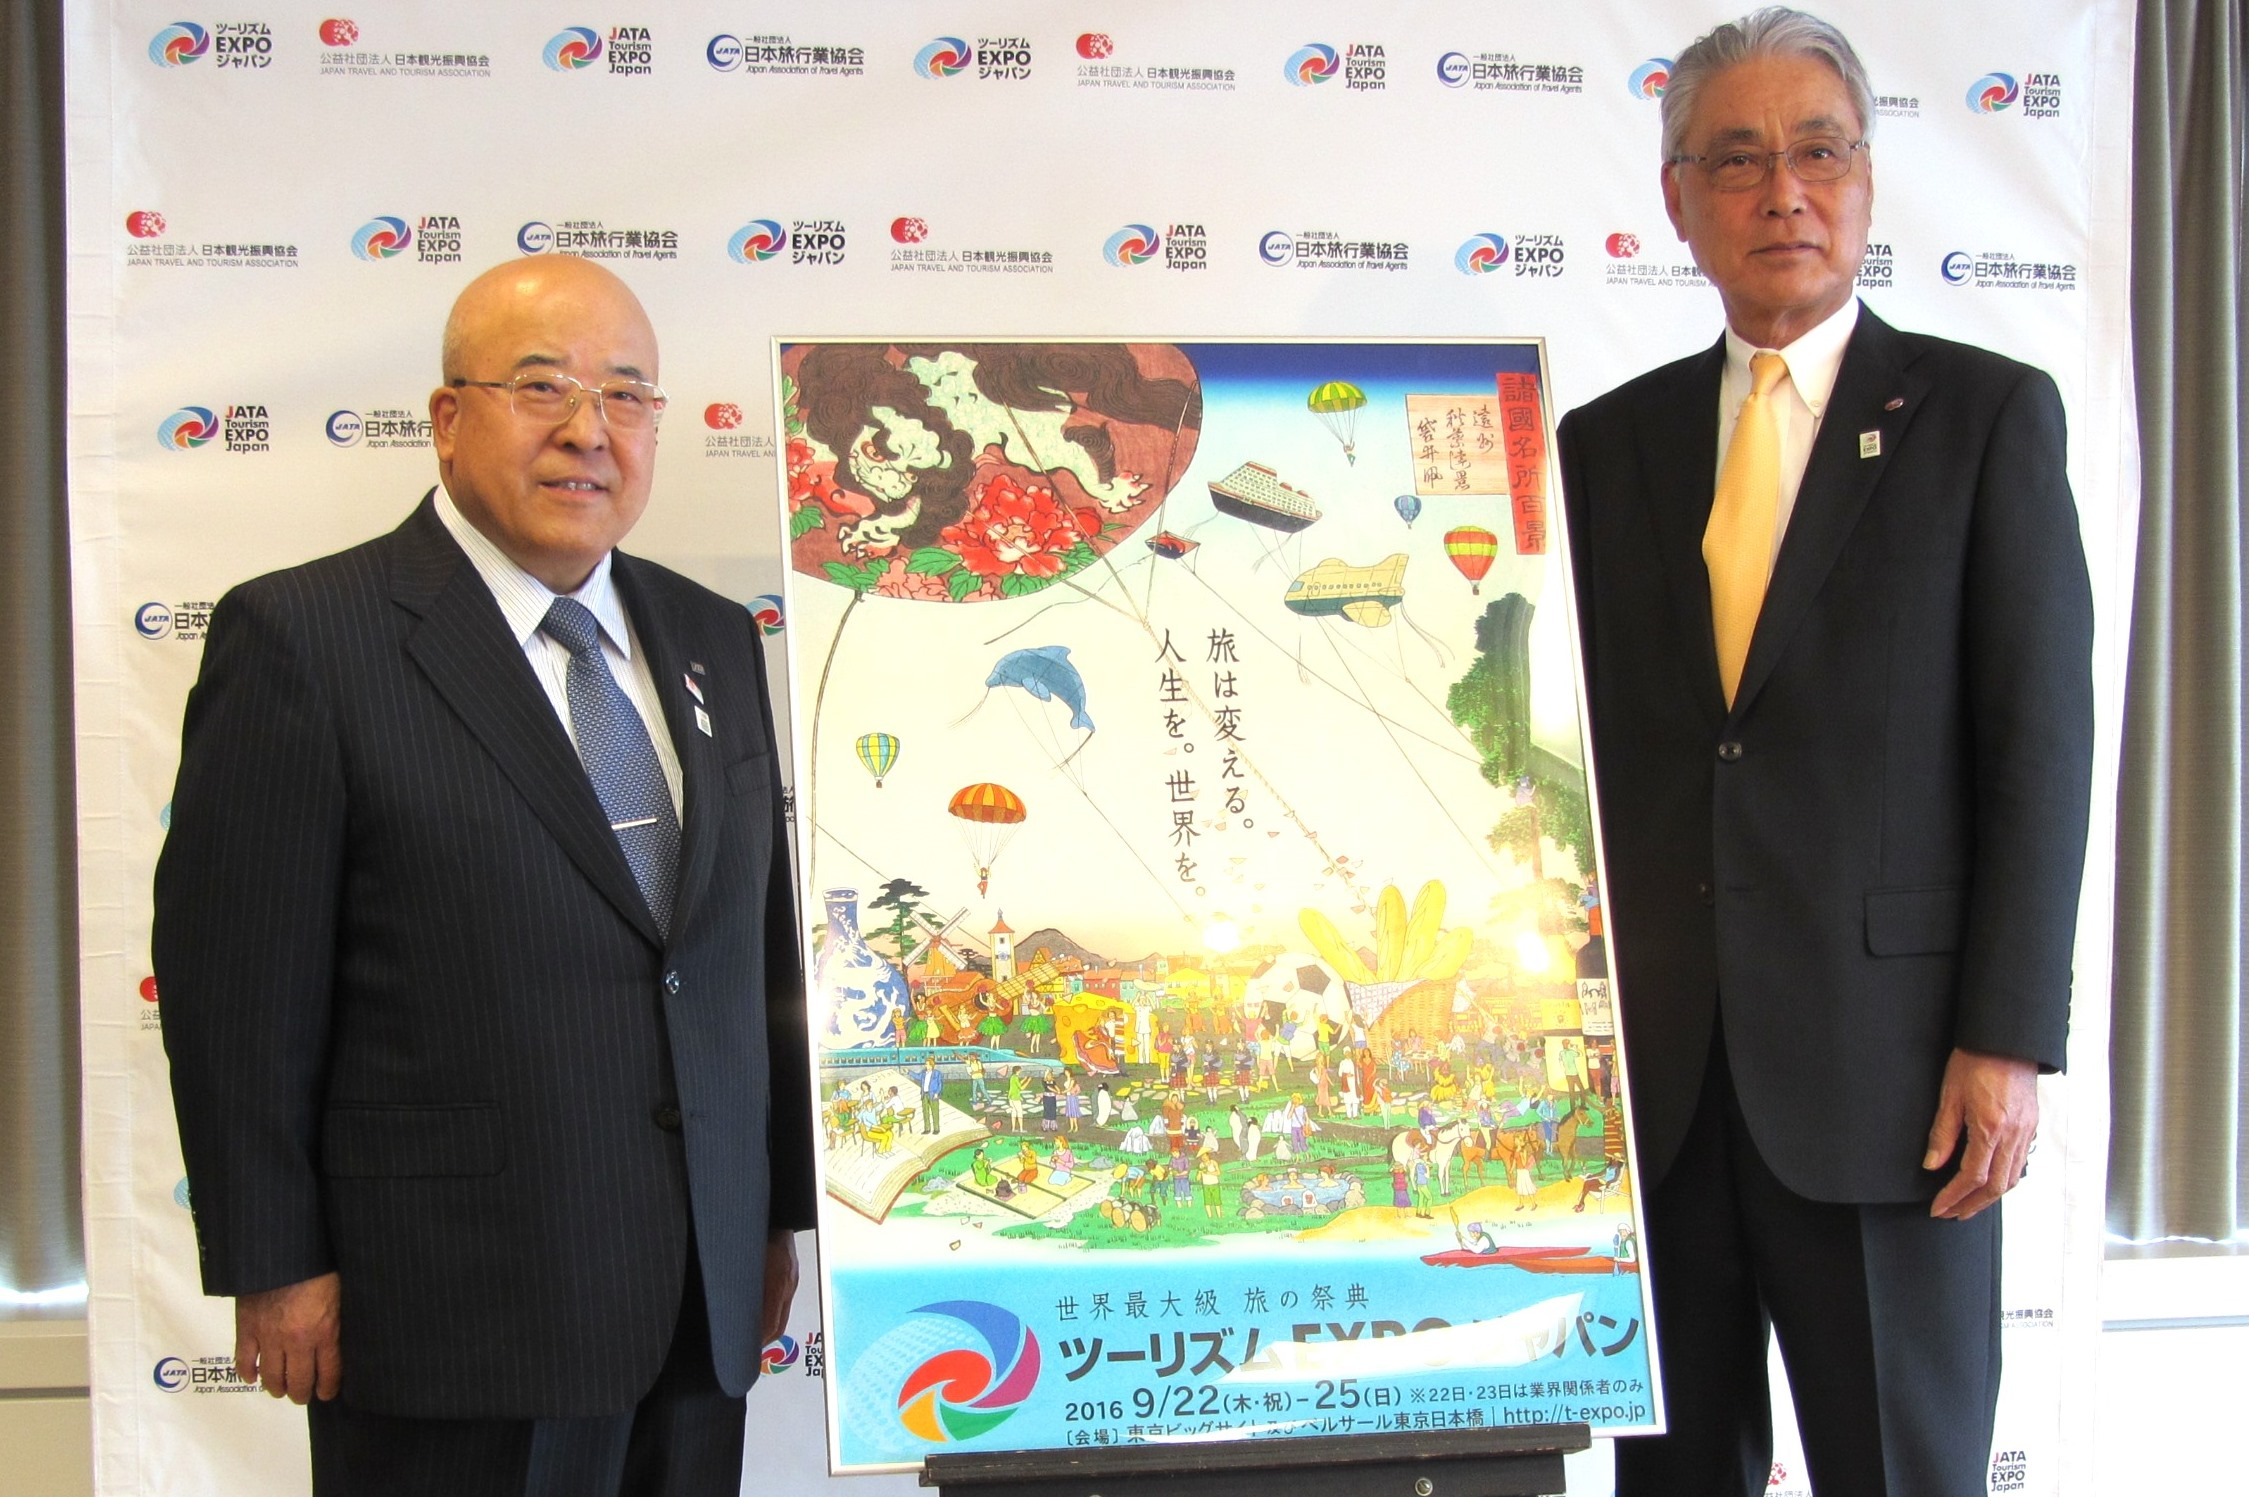 Tourism EXPO Japan 2016 enriches discussion forums to aim at one of the world's biggest tourism events